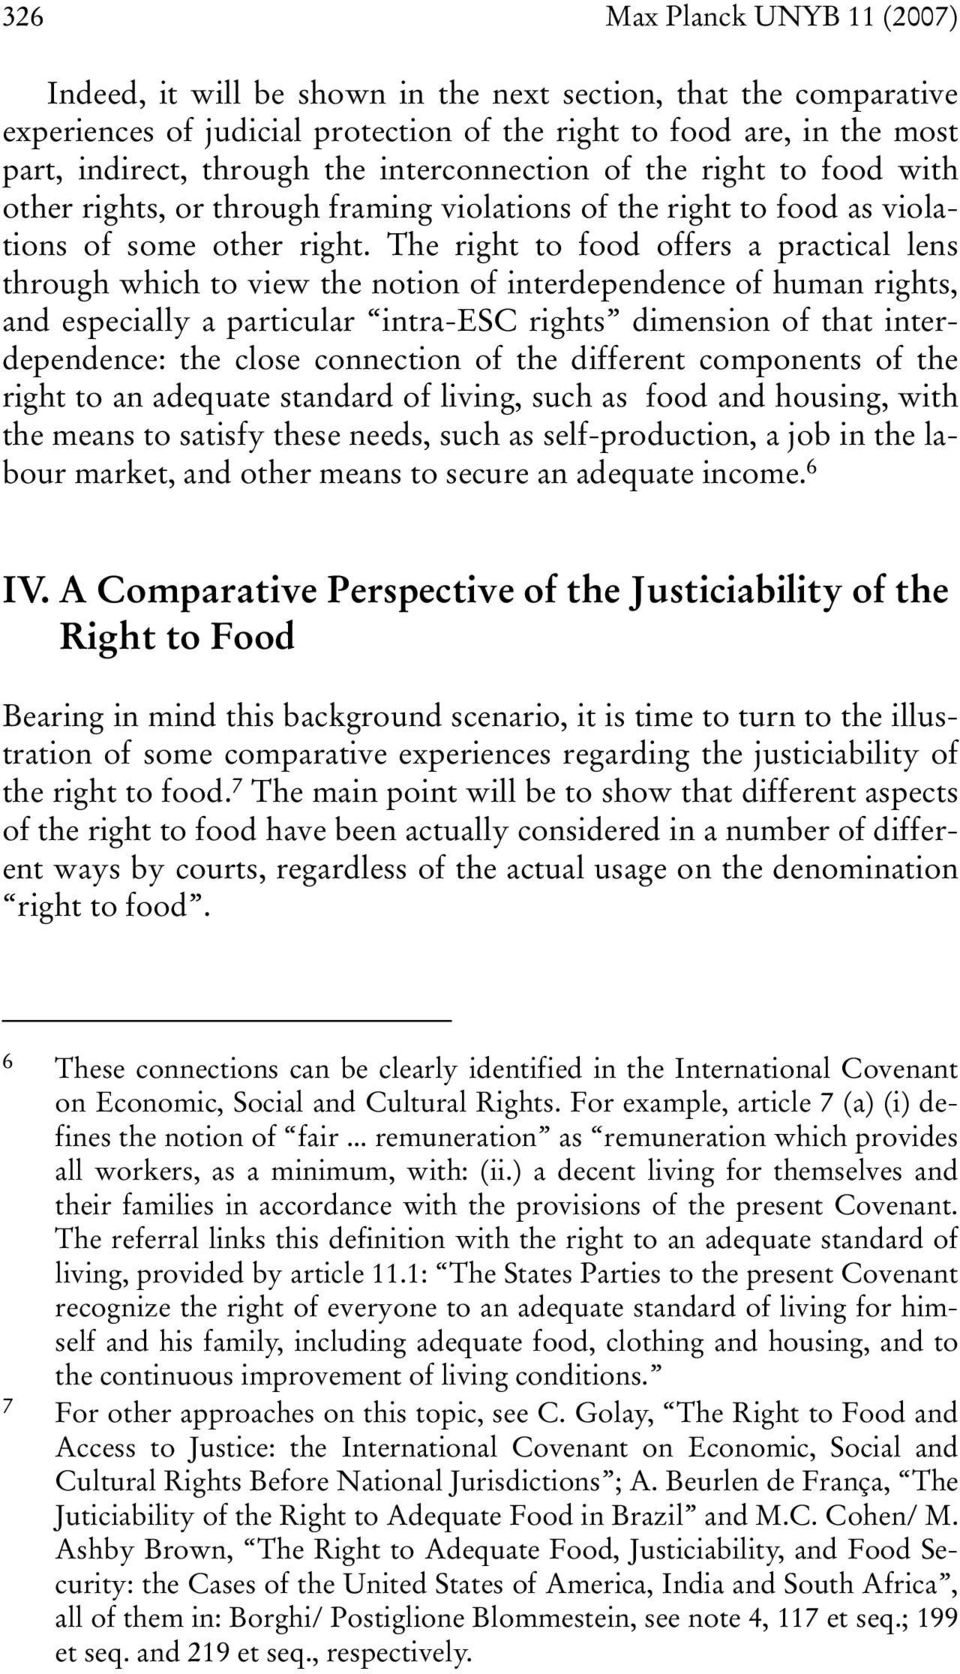 The right to food offers a practical lens through which to view the notion of interdependence of human rights, and especially a particular intra-esc rights dimension of that interdependence: the